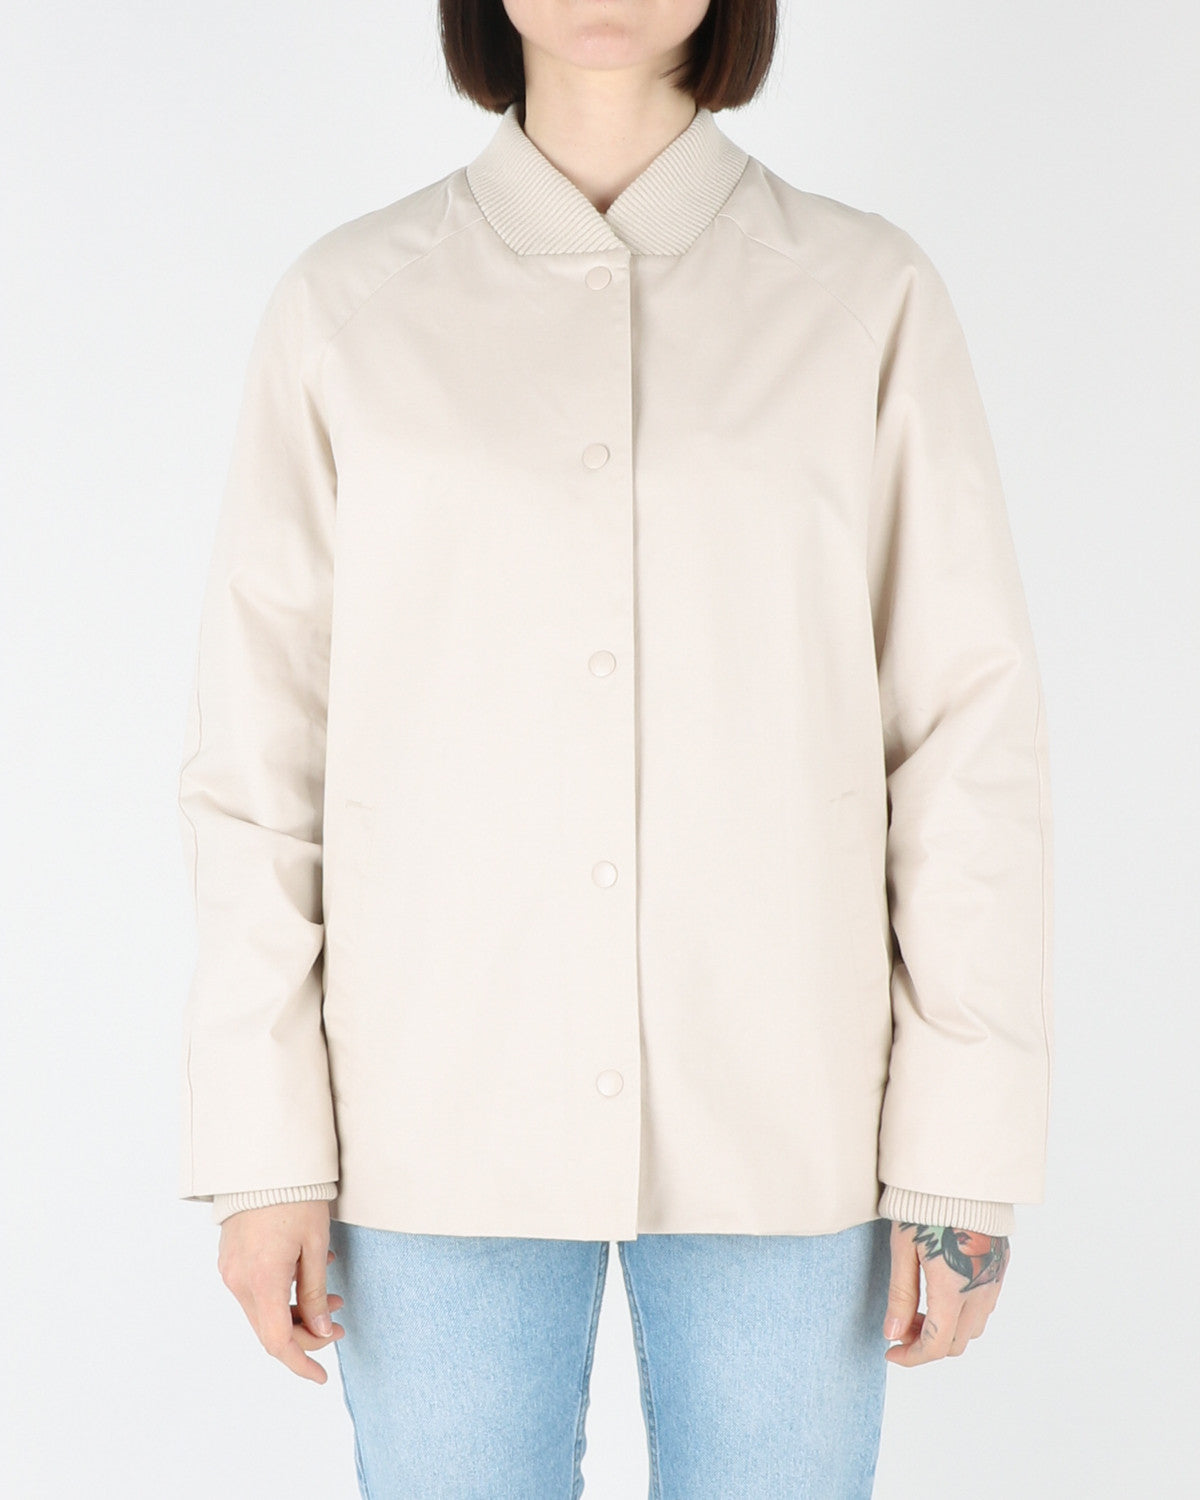 Jacket Light 77034, white